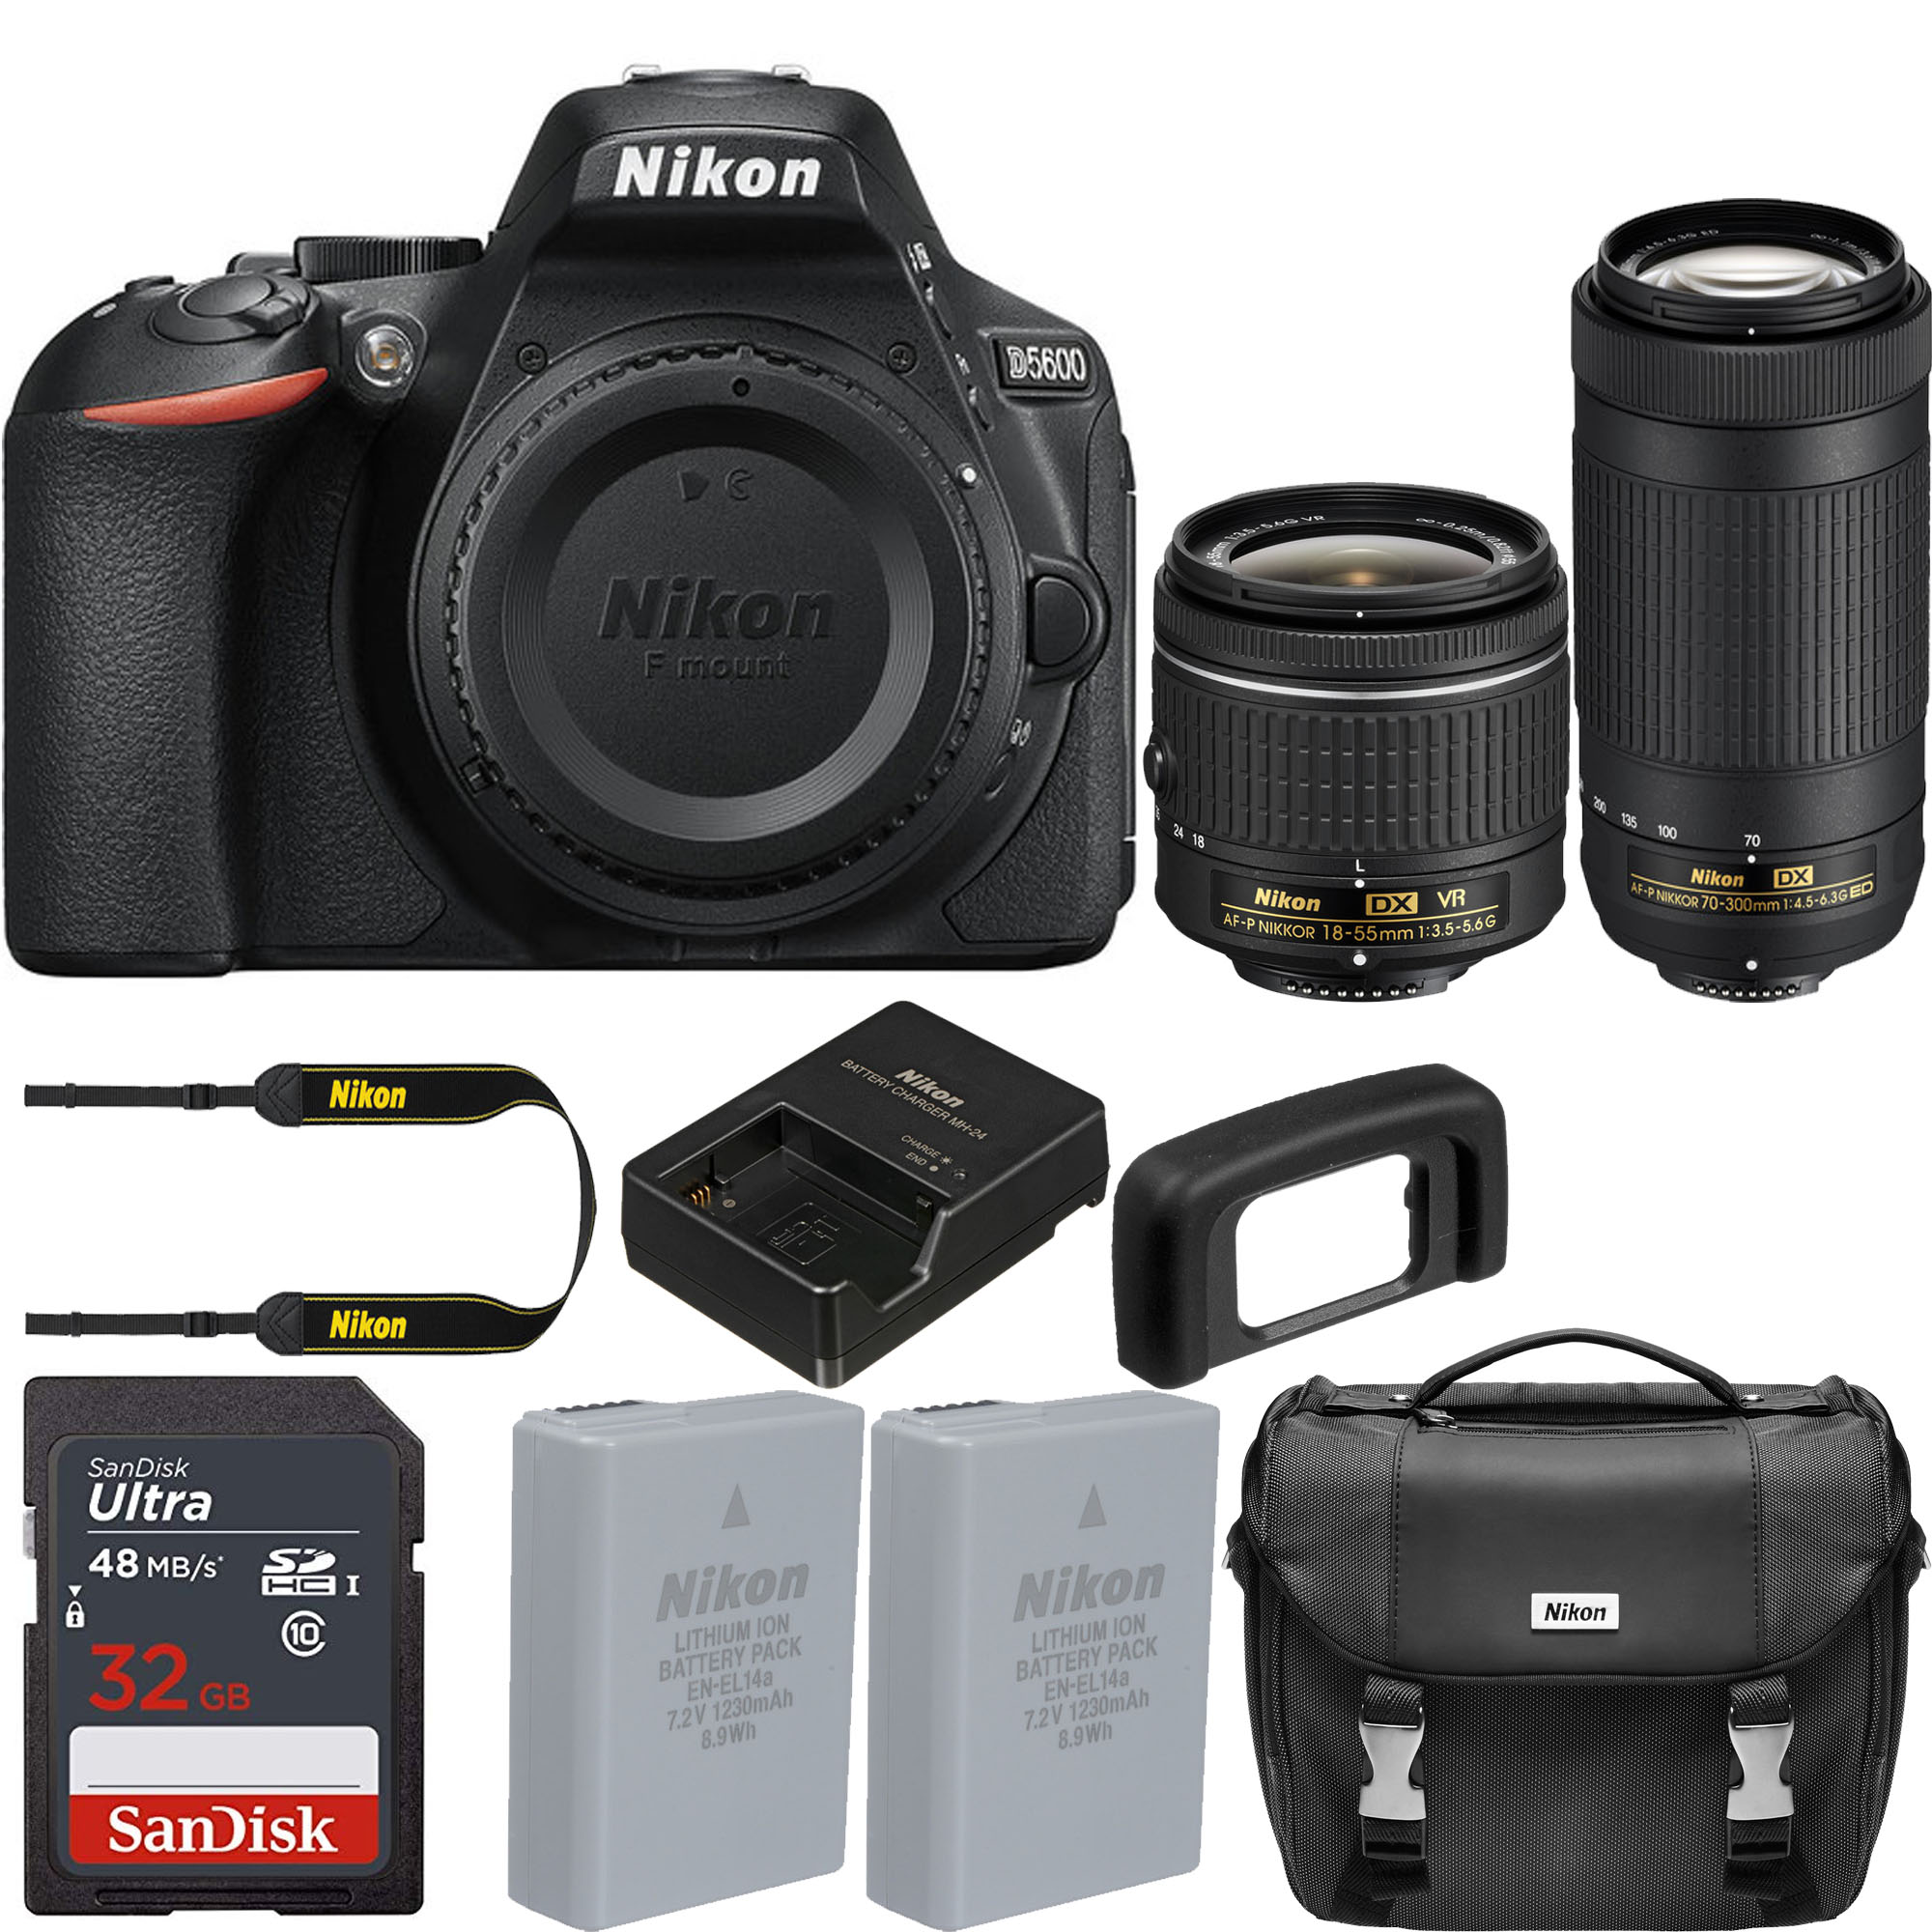 Nikon D5600 bundle deals